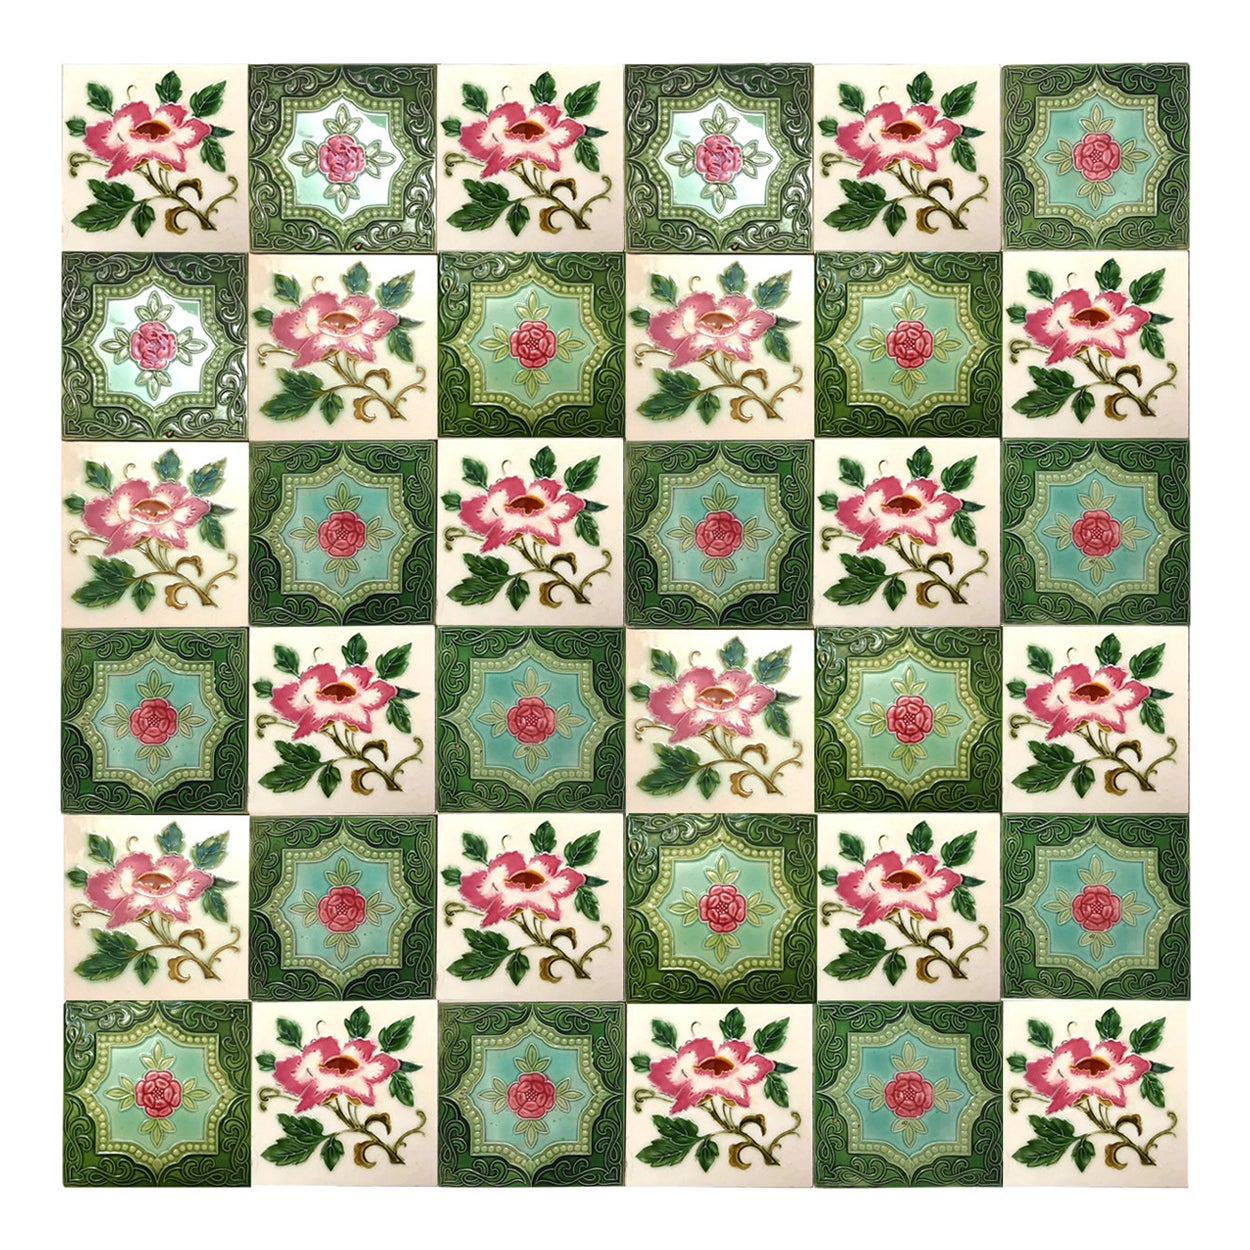 1 of the 20 Mixed Authentic Glazed Art Nouveau Relief Tiles Rose, Belga, 1930s